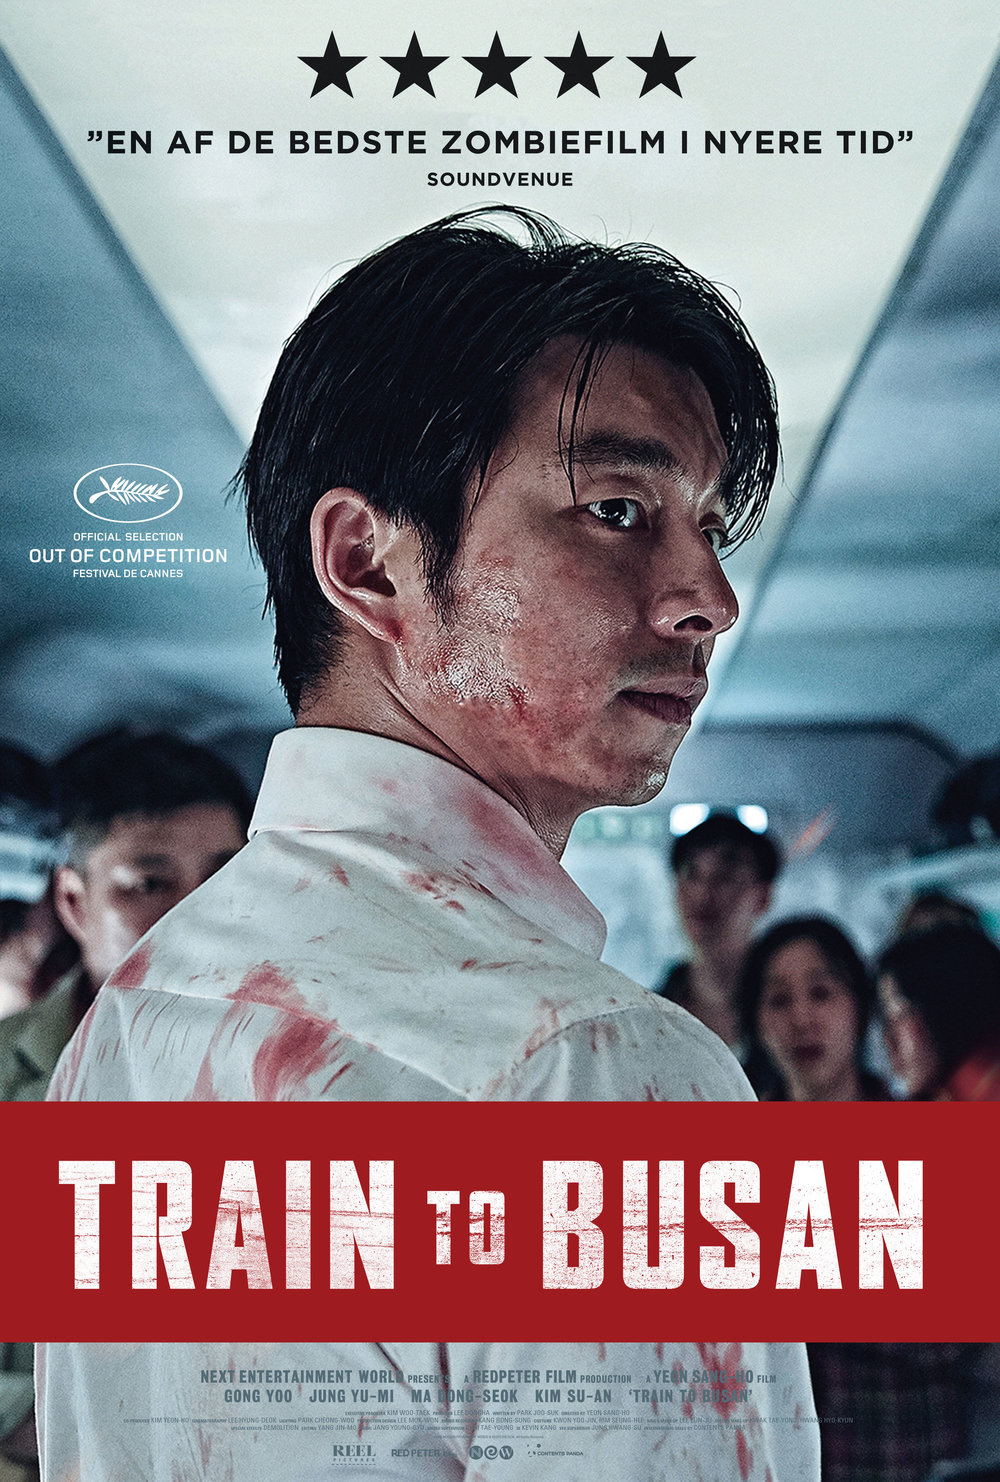 Movie poster for Train to Busan